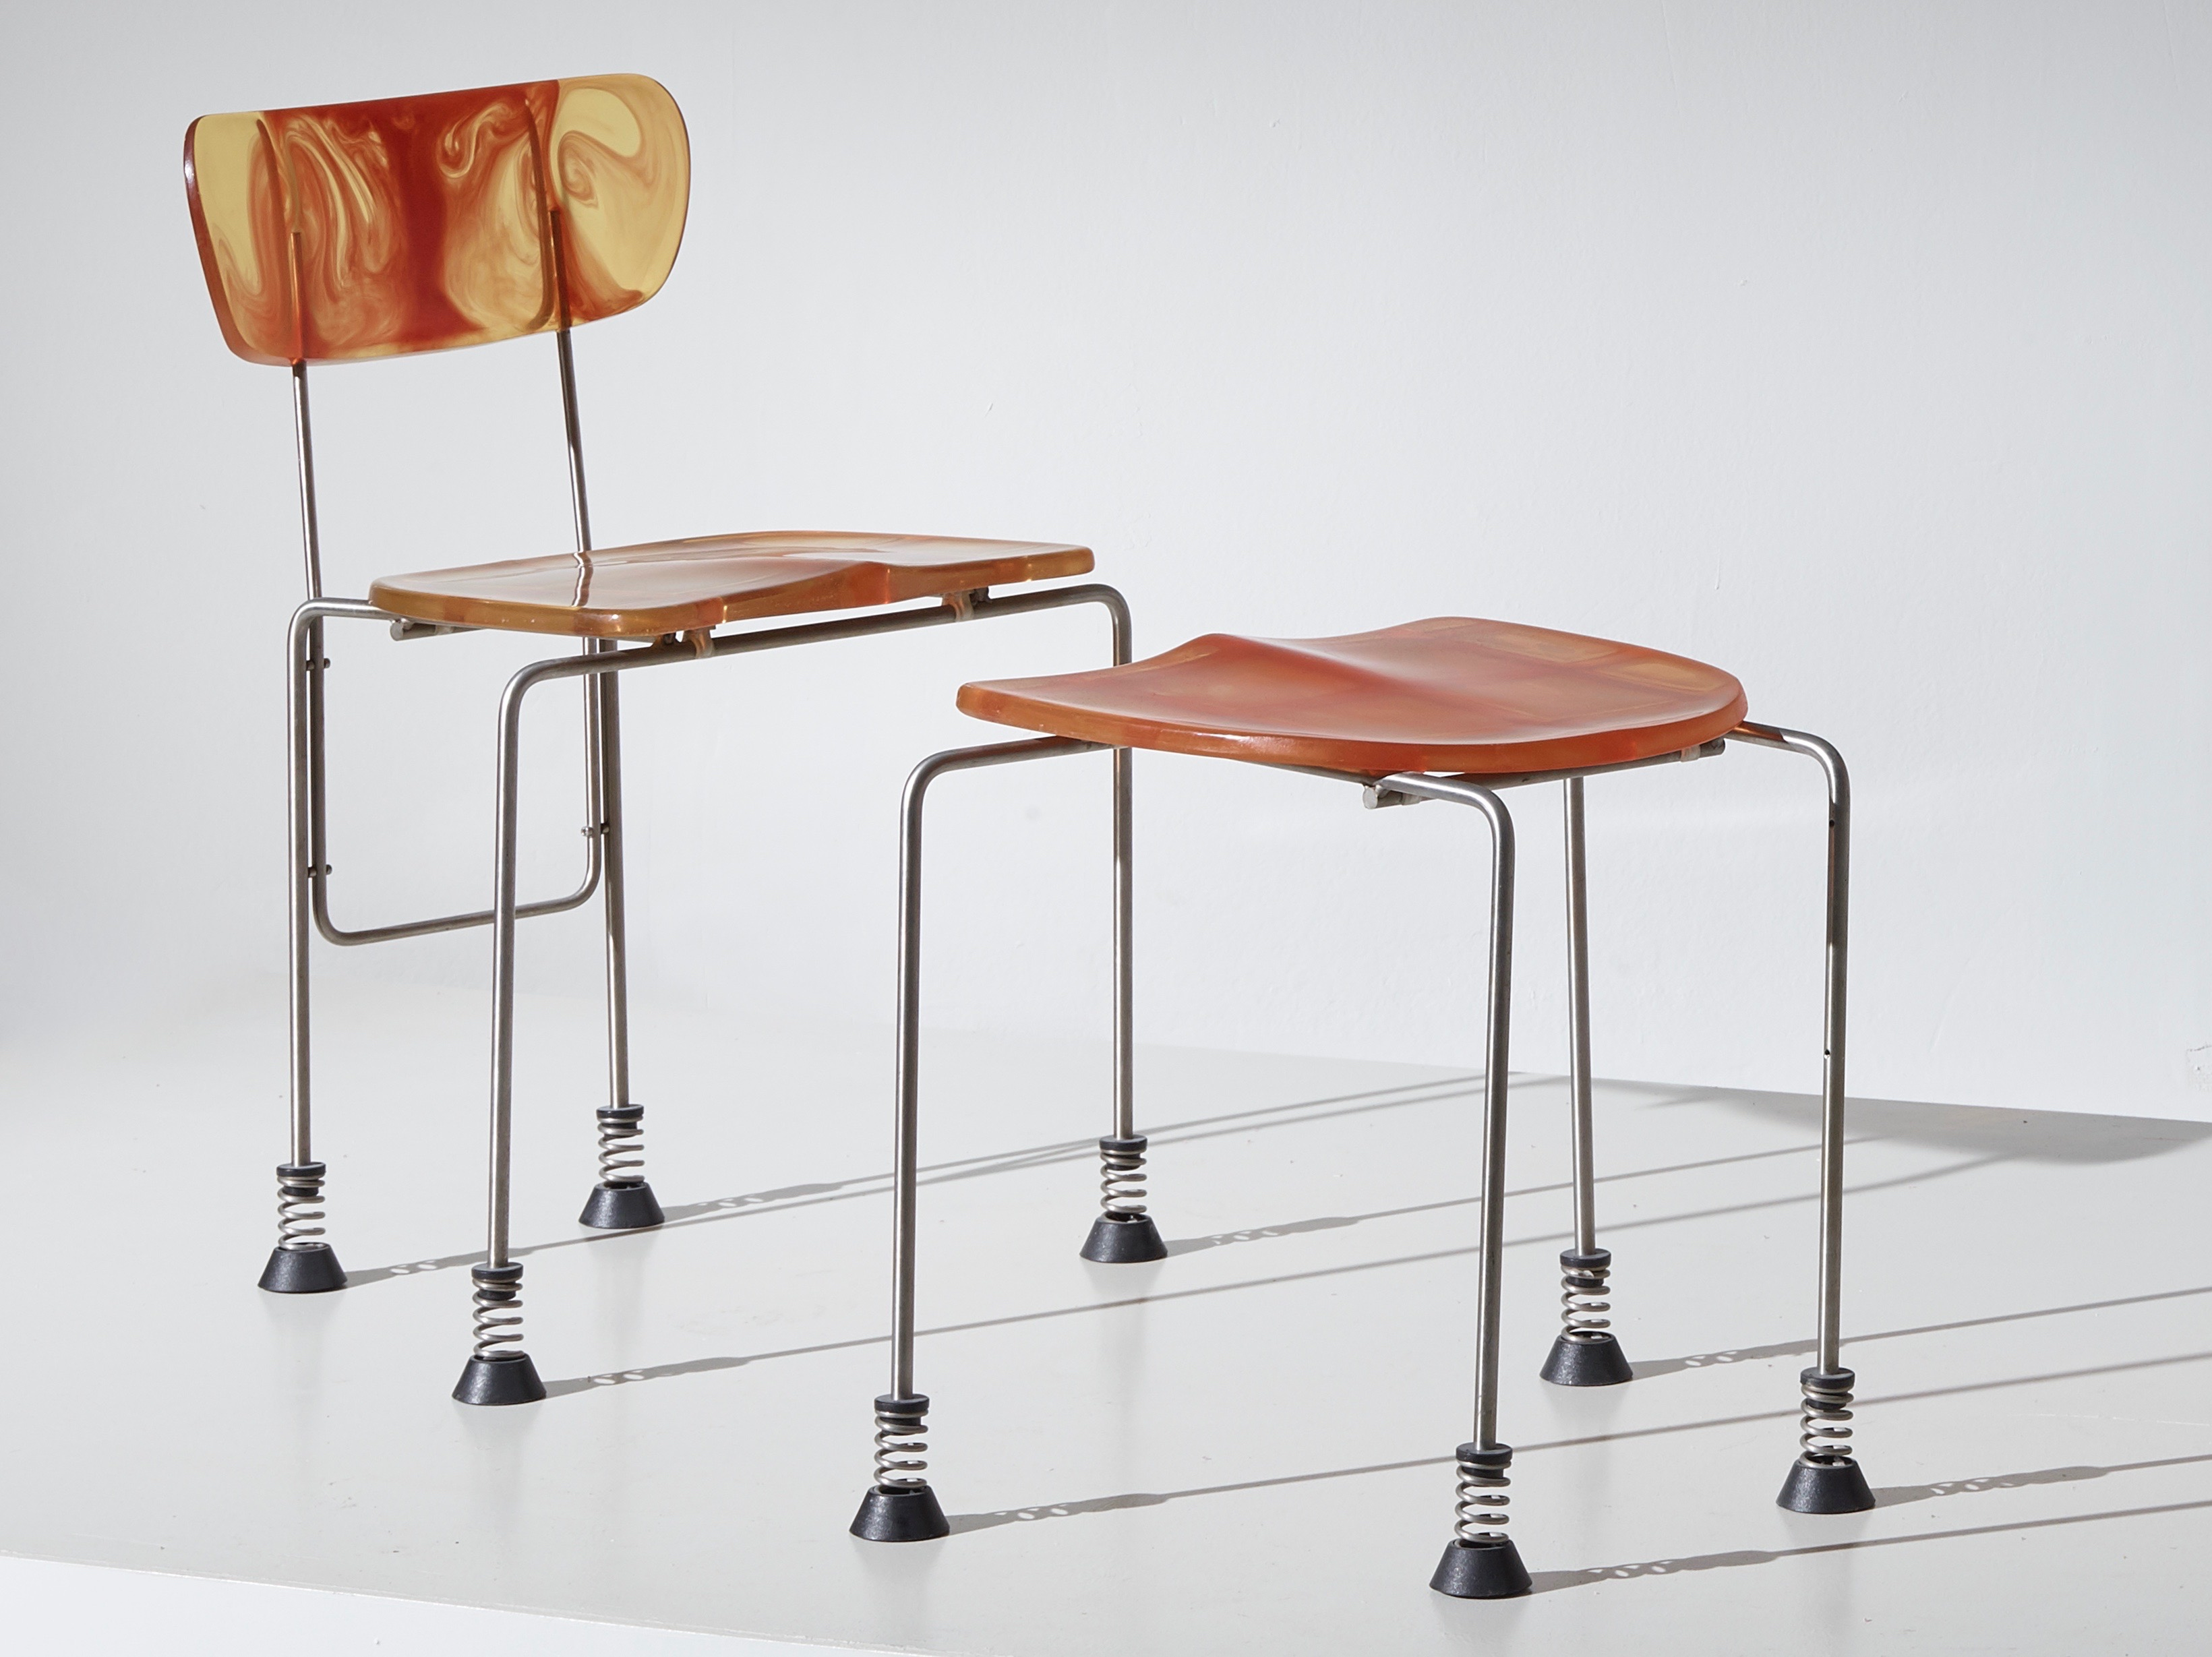 Broadway chairs and a stool by Gaetano Pesce for Bernini